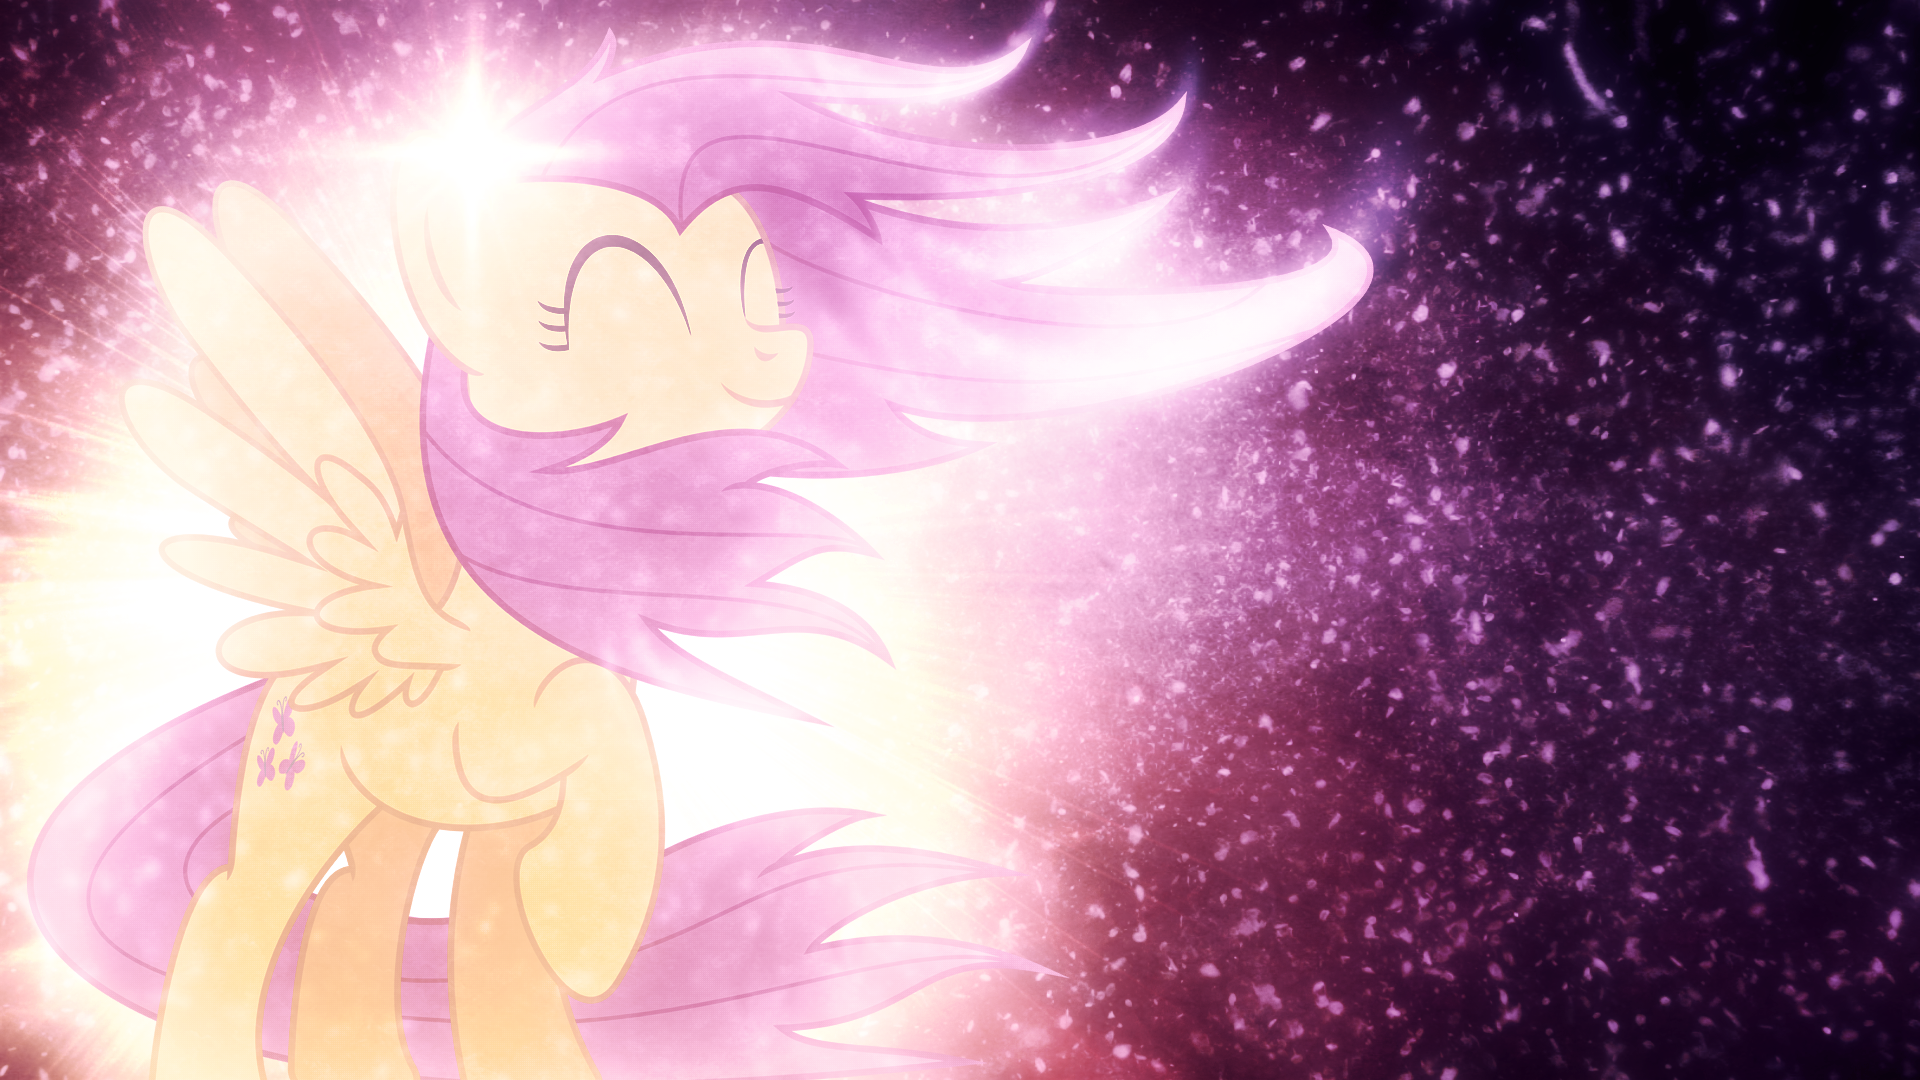 Fluttershy in the Wind - Wallpaper by MysteriousKaos and Tzolkine